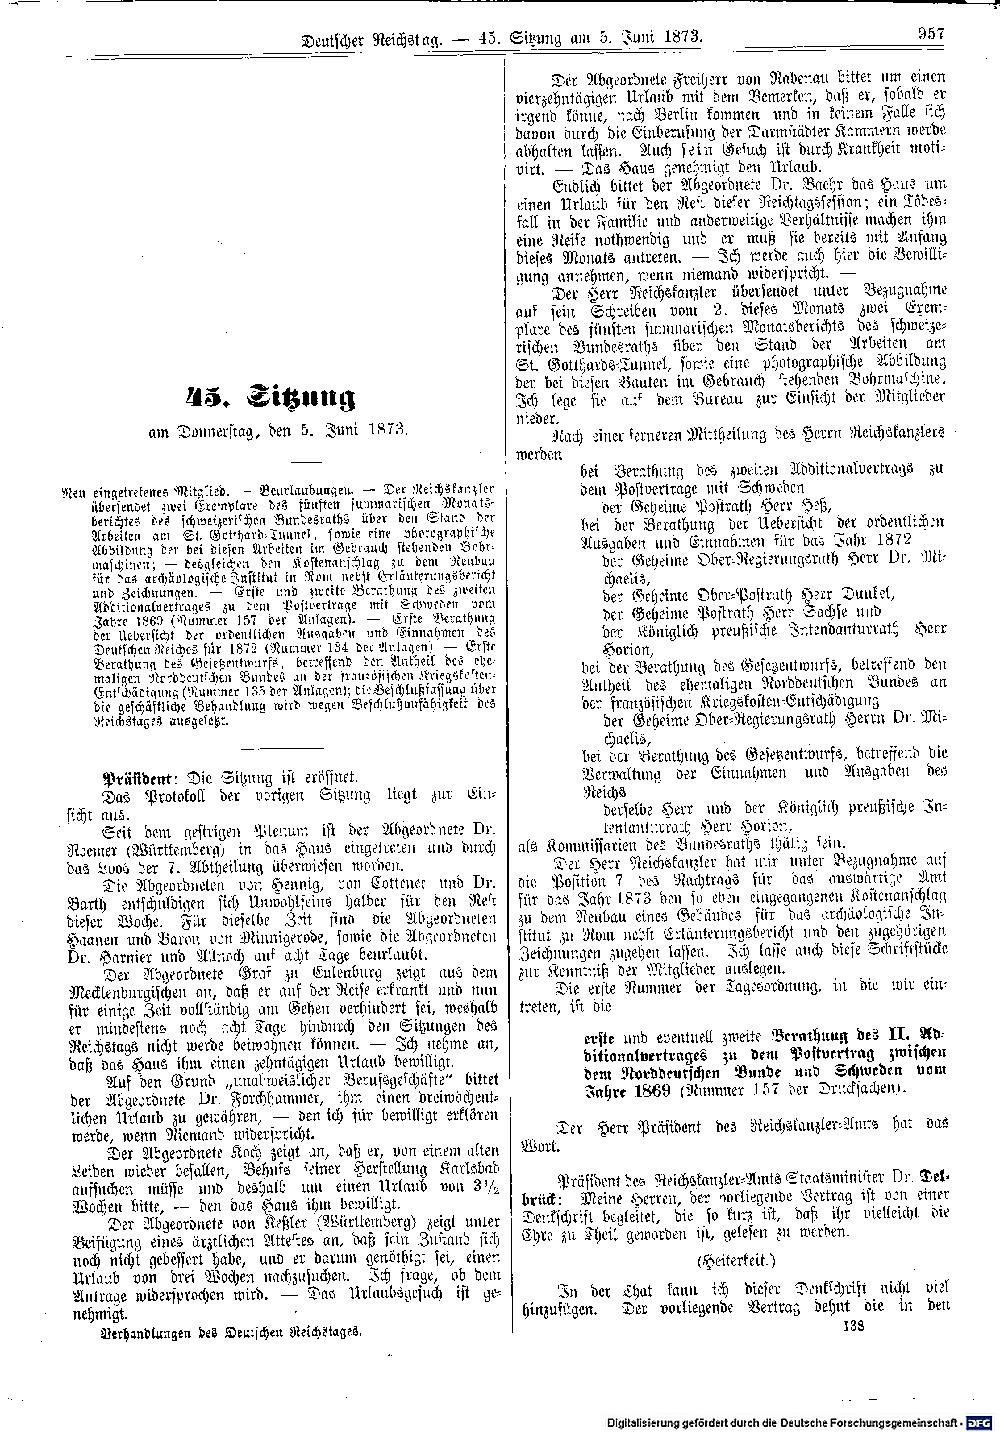 Scan of page 957